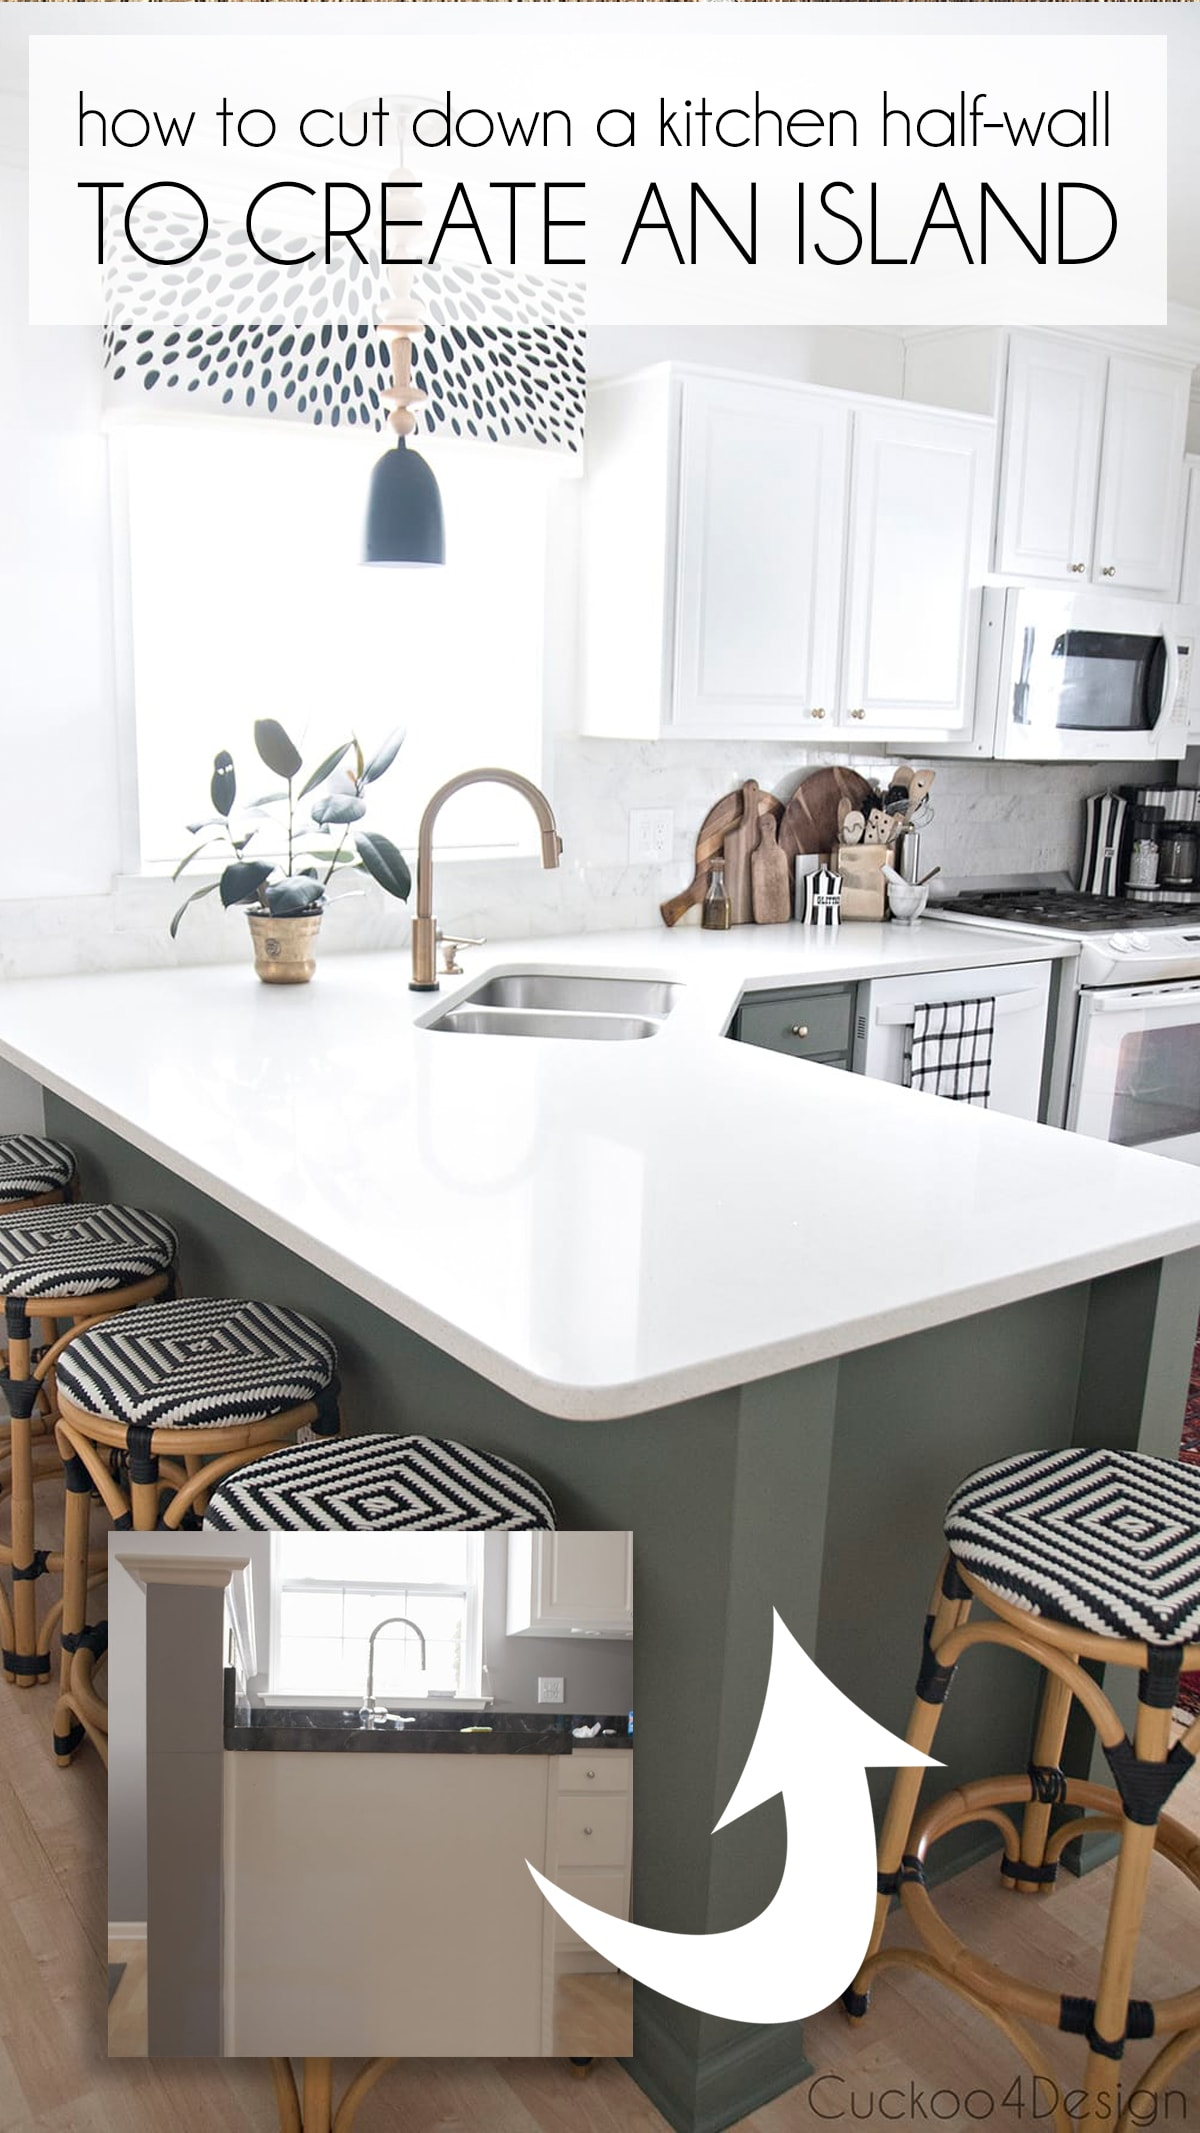 how to cut down a kitchen half wall to create a kitchen island for counter stools